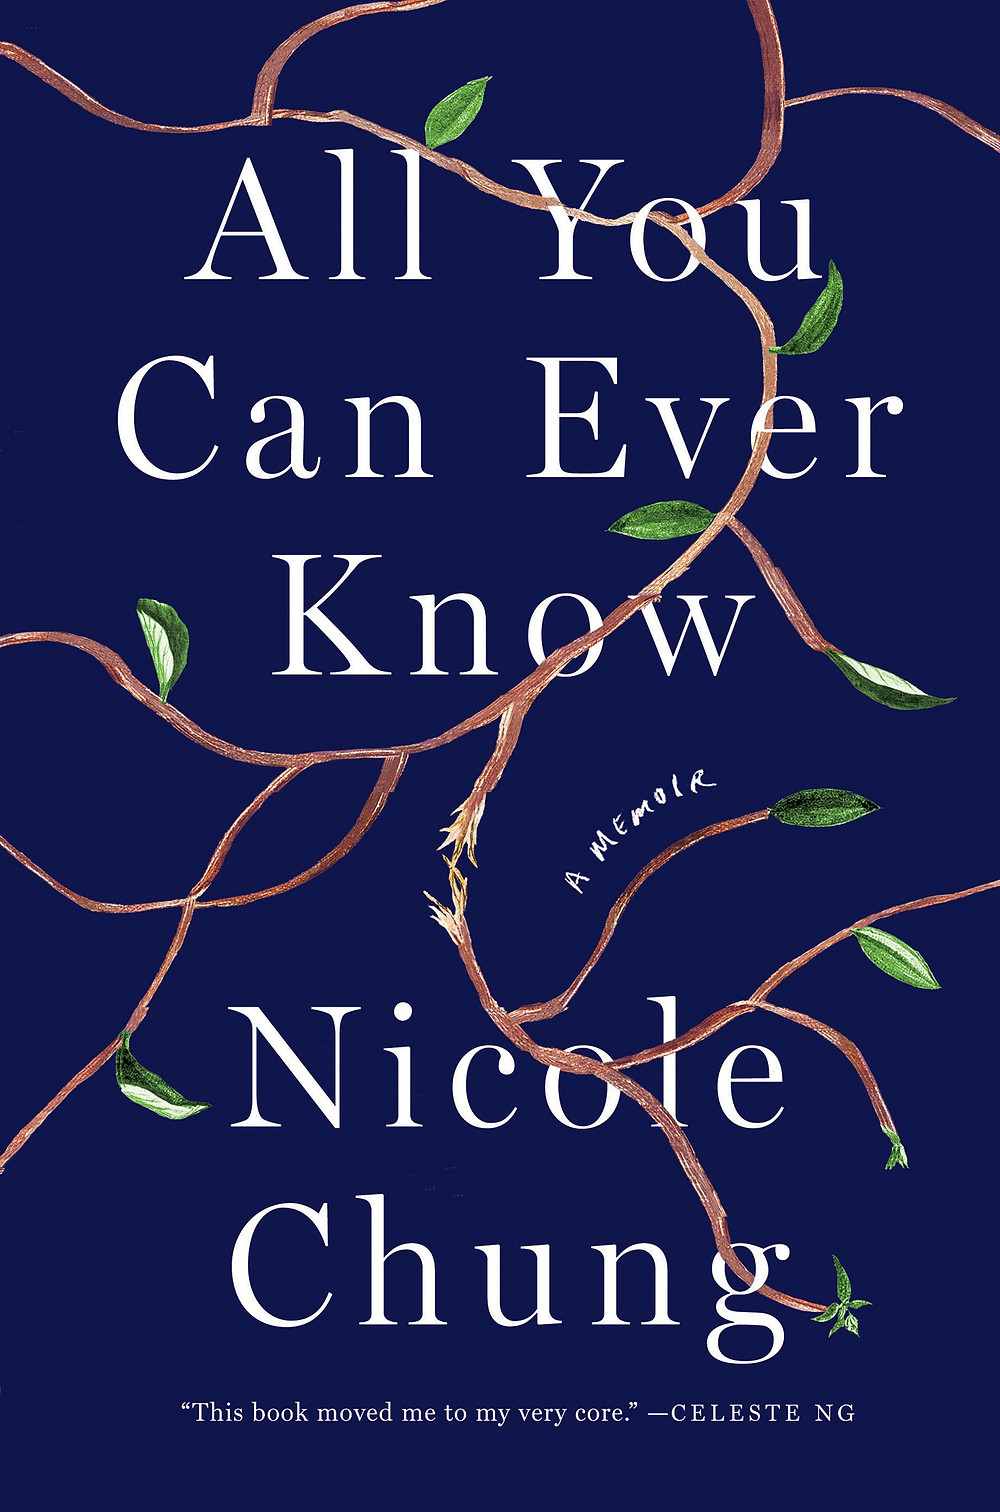 The BookWalker's Anticipated Indie Books of Fall 2018 List: All You Can Ever Know: A Memoir by Nicole Chung_The BookWalker